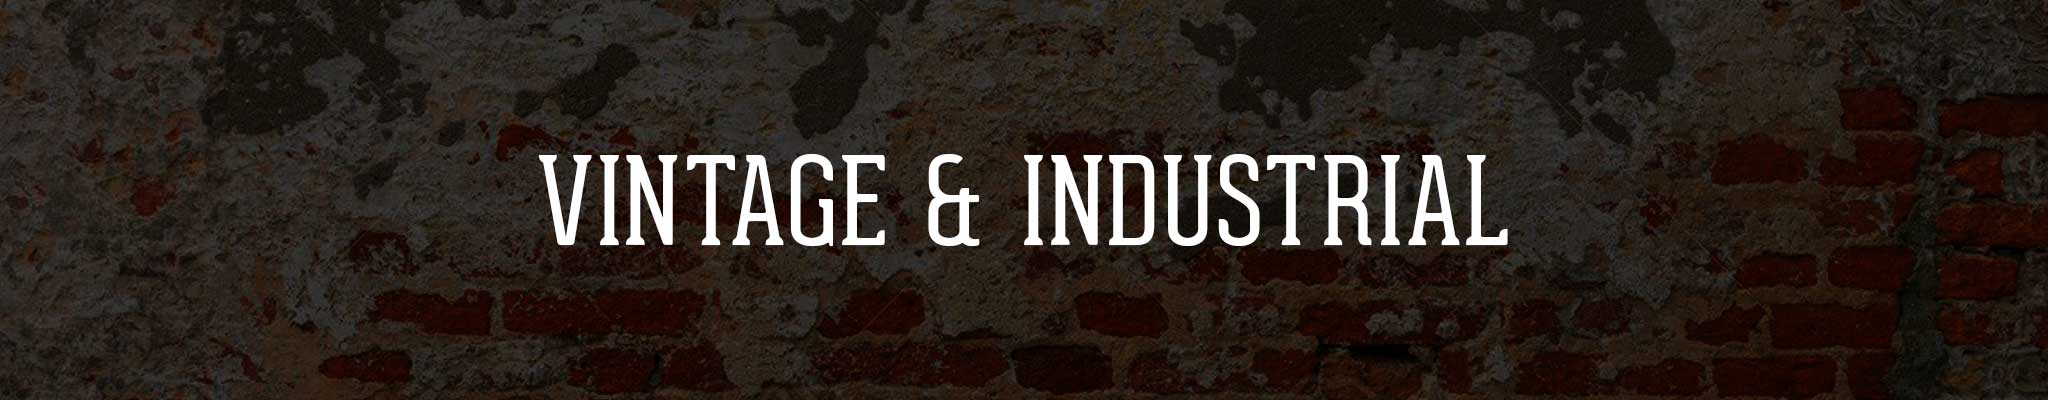 Vintage & Industrial Lighting